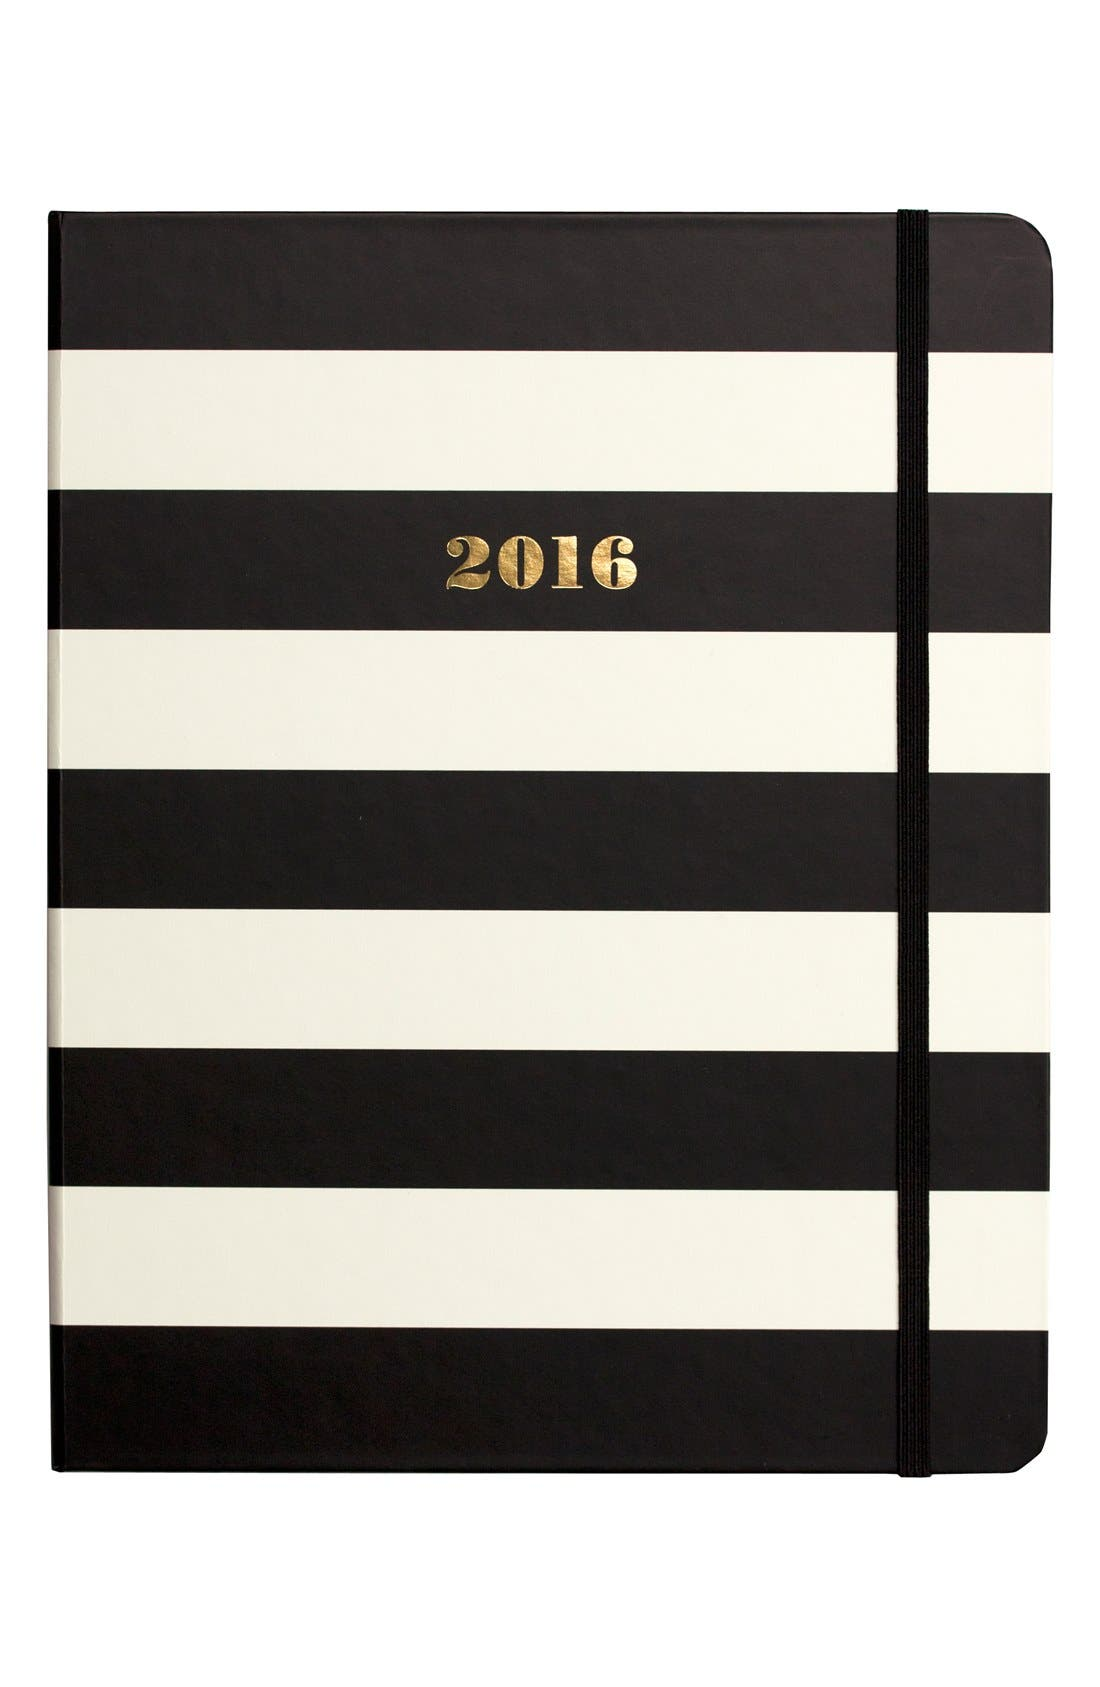 Alternate Image 1 Selected - kate spade new york large 17-month 2016 planner